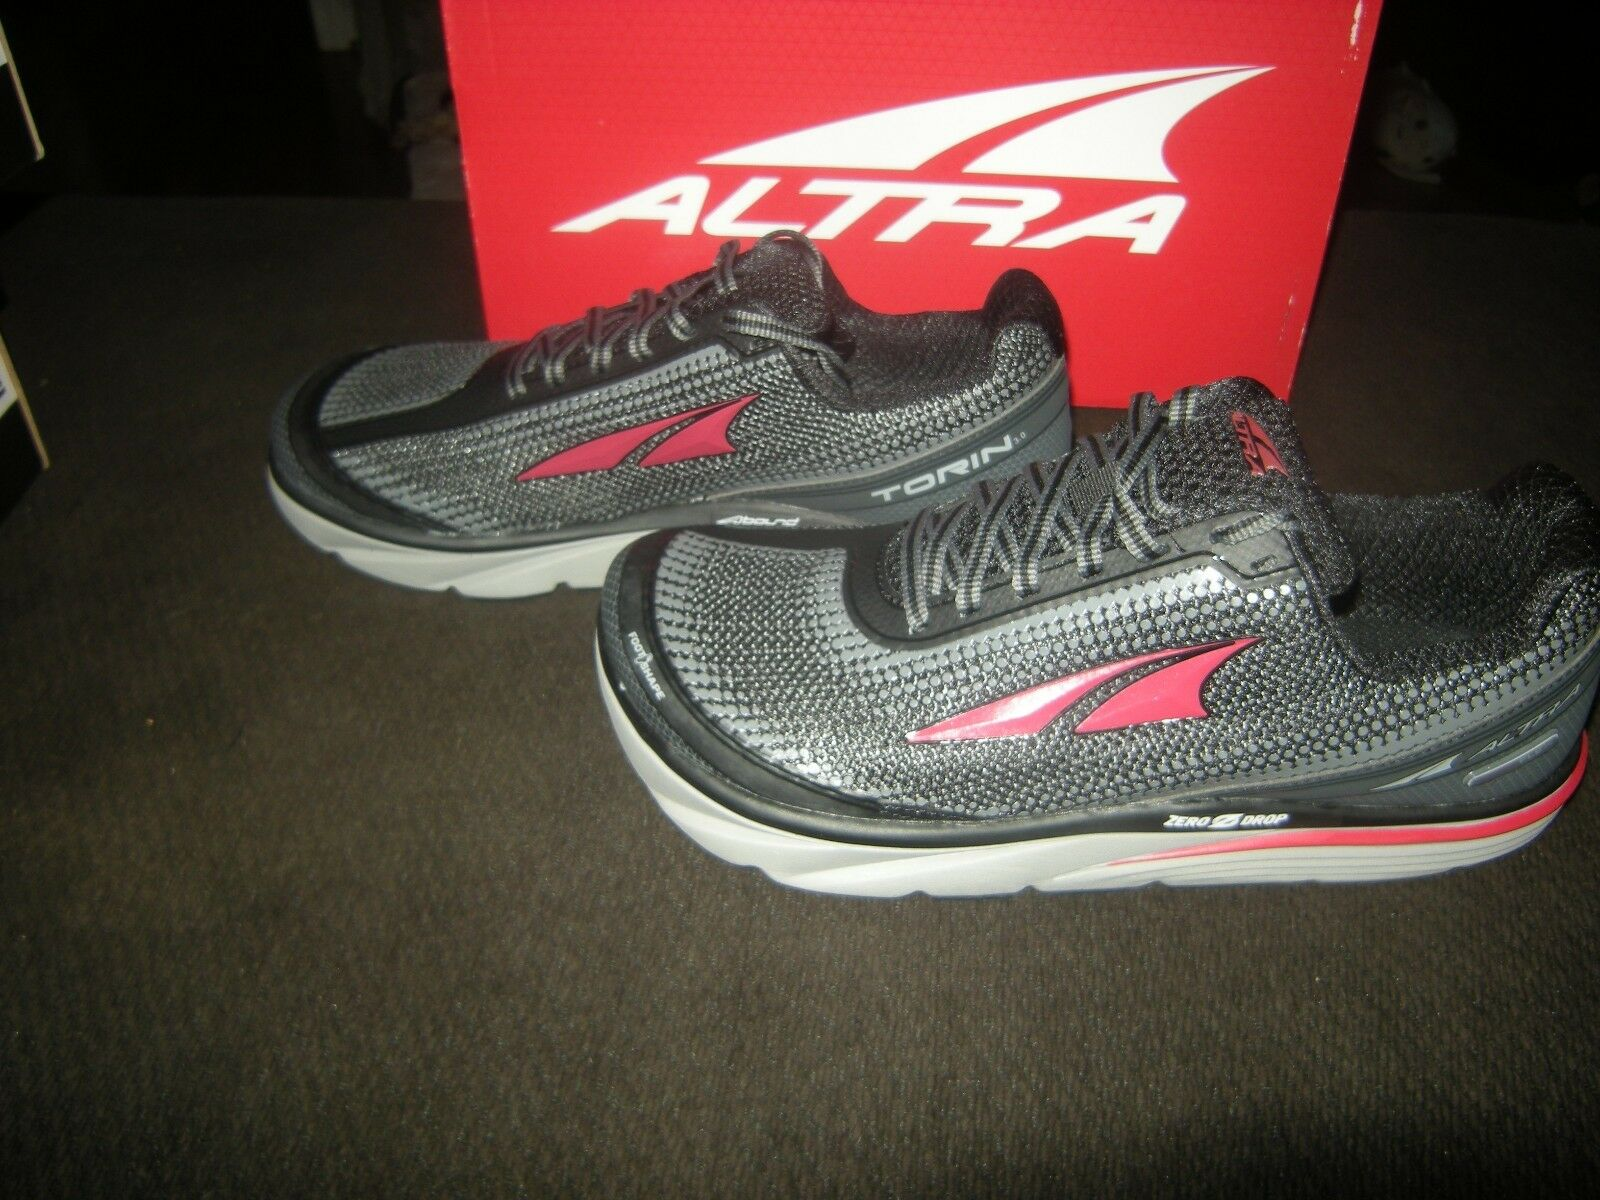 New Mens Black & Red Altra Torin 3.0 Running shoes, Size 9.5